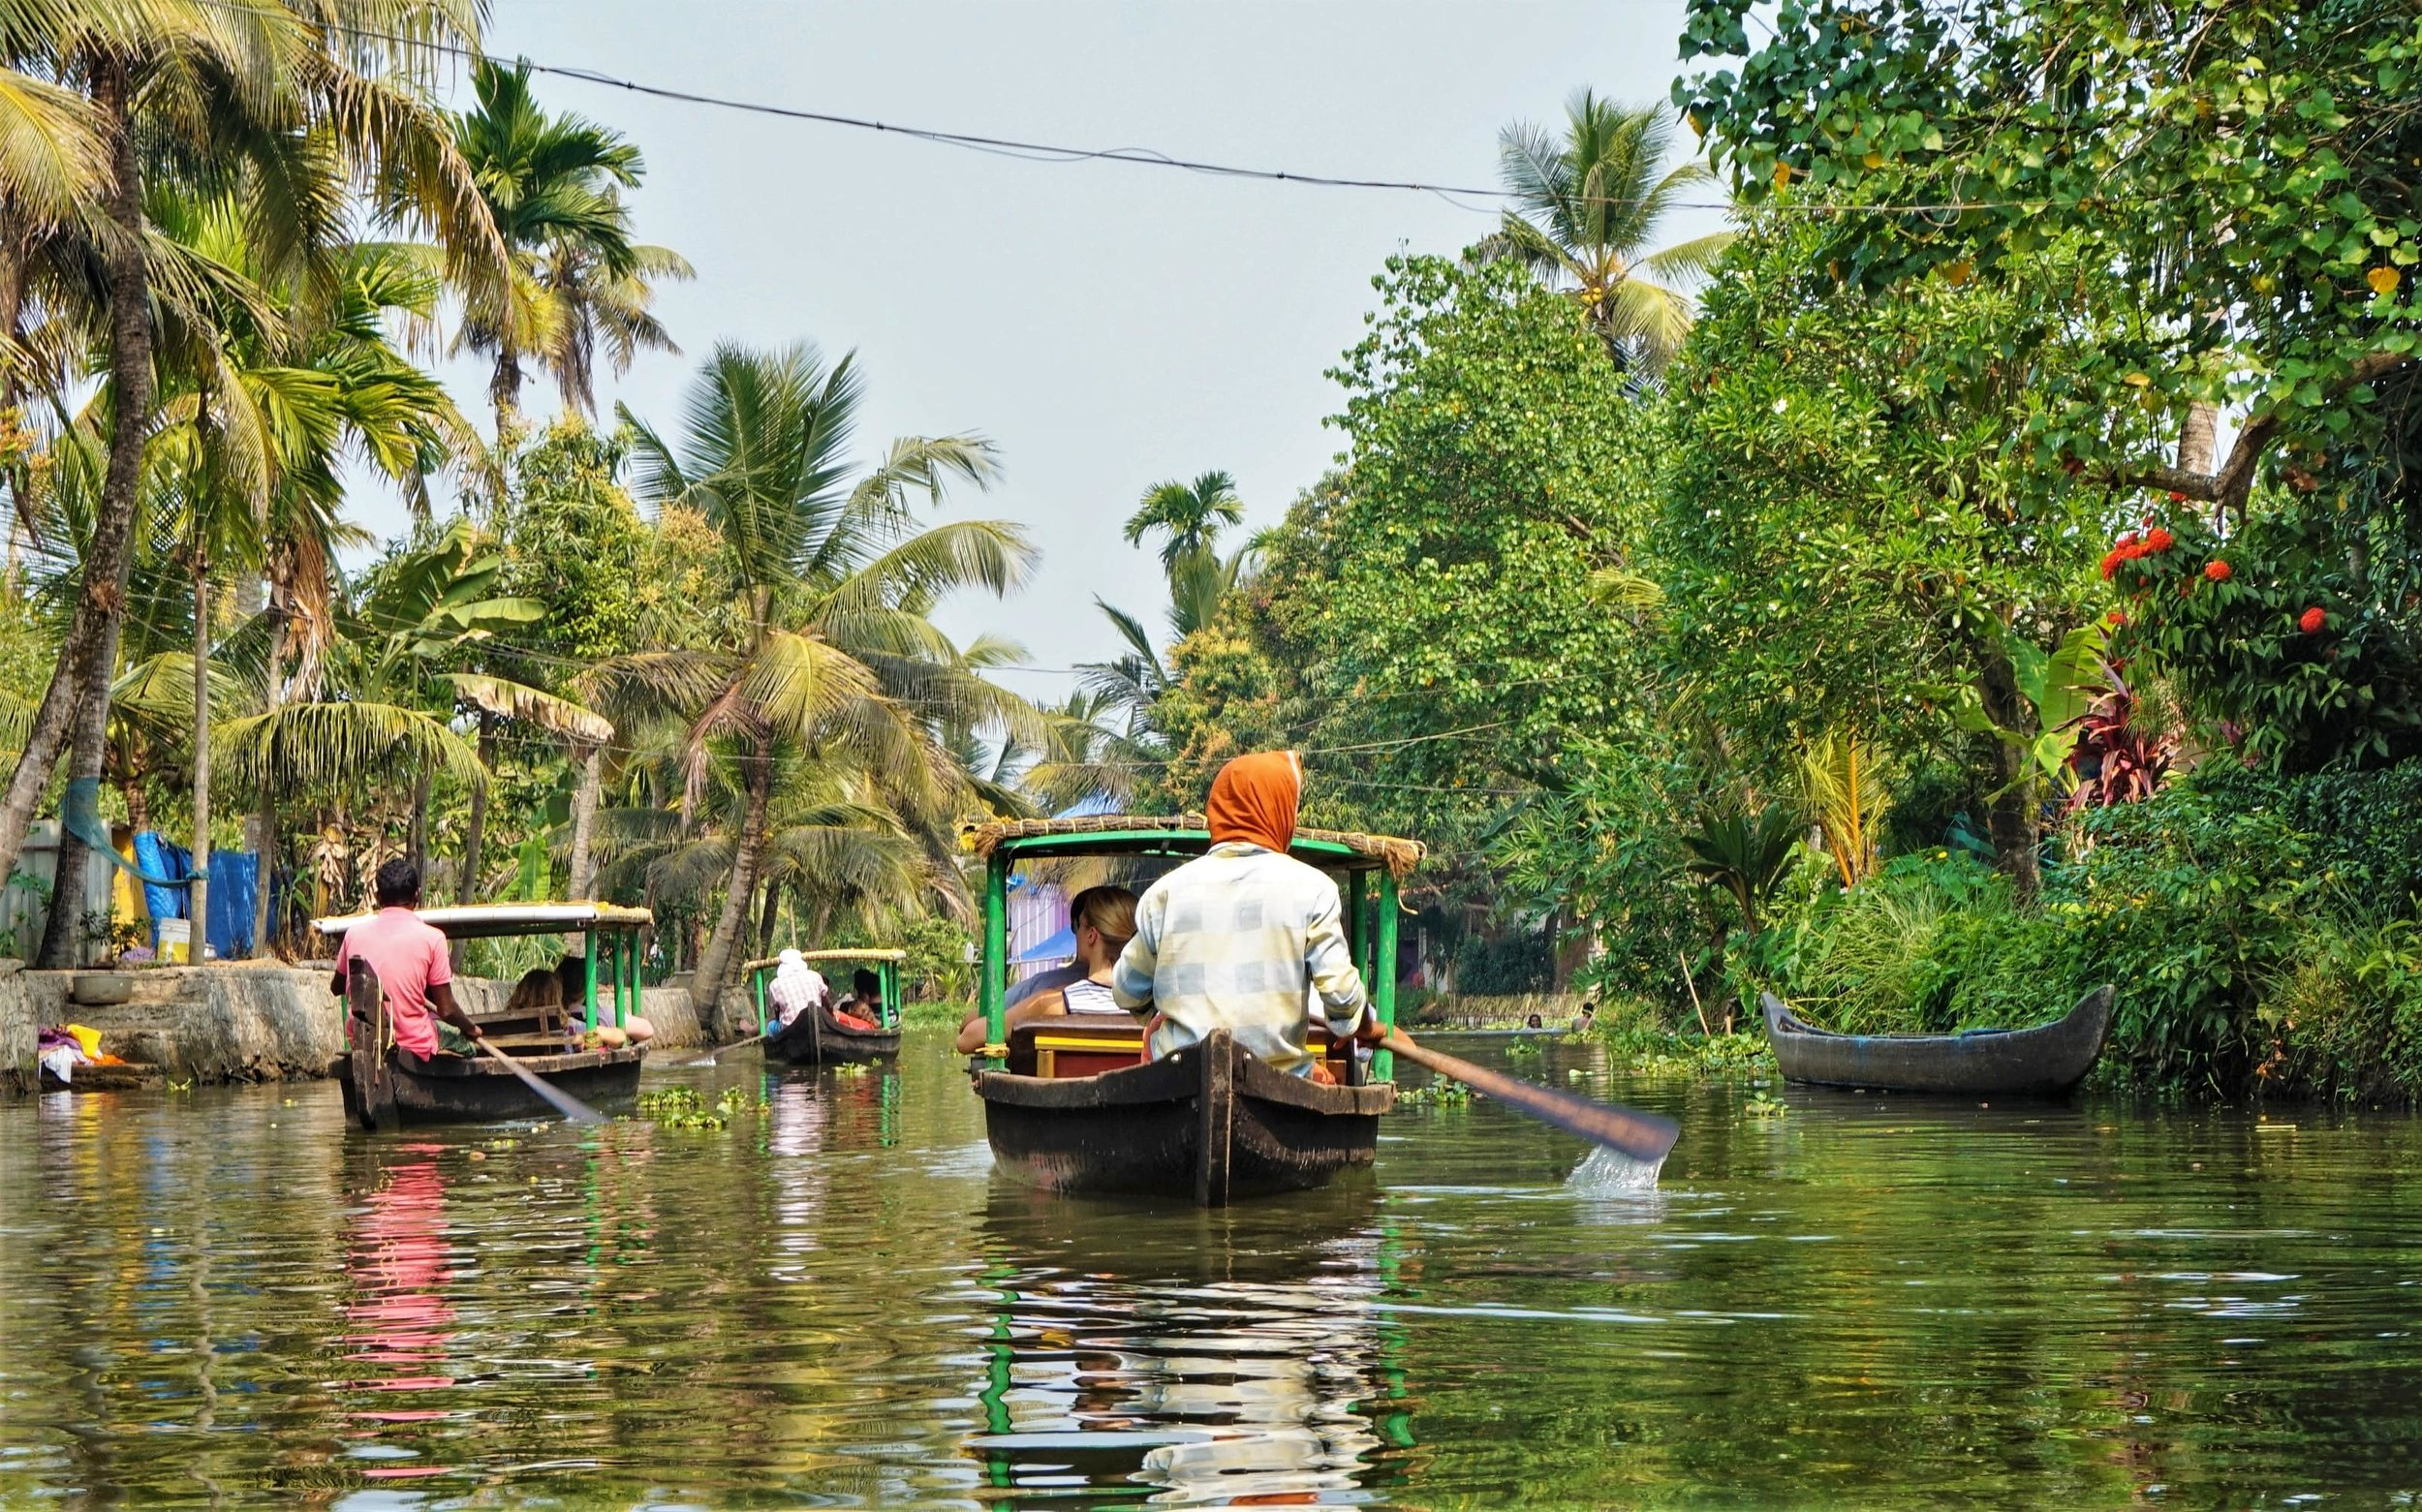 The best Alleppey backwaters tour is the Canoe Kerala backwaters tour! Backwaters of Kerala!